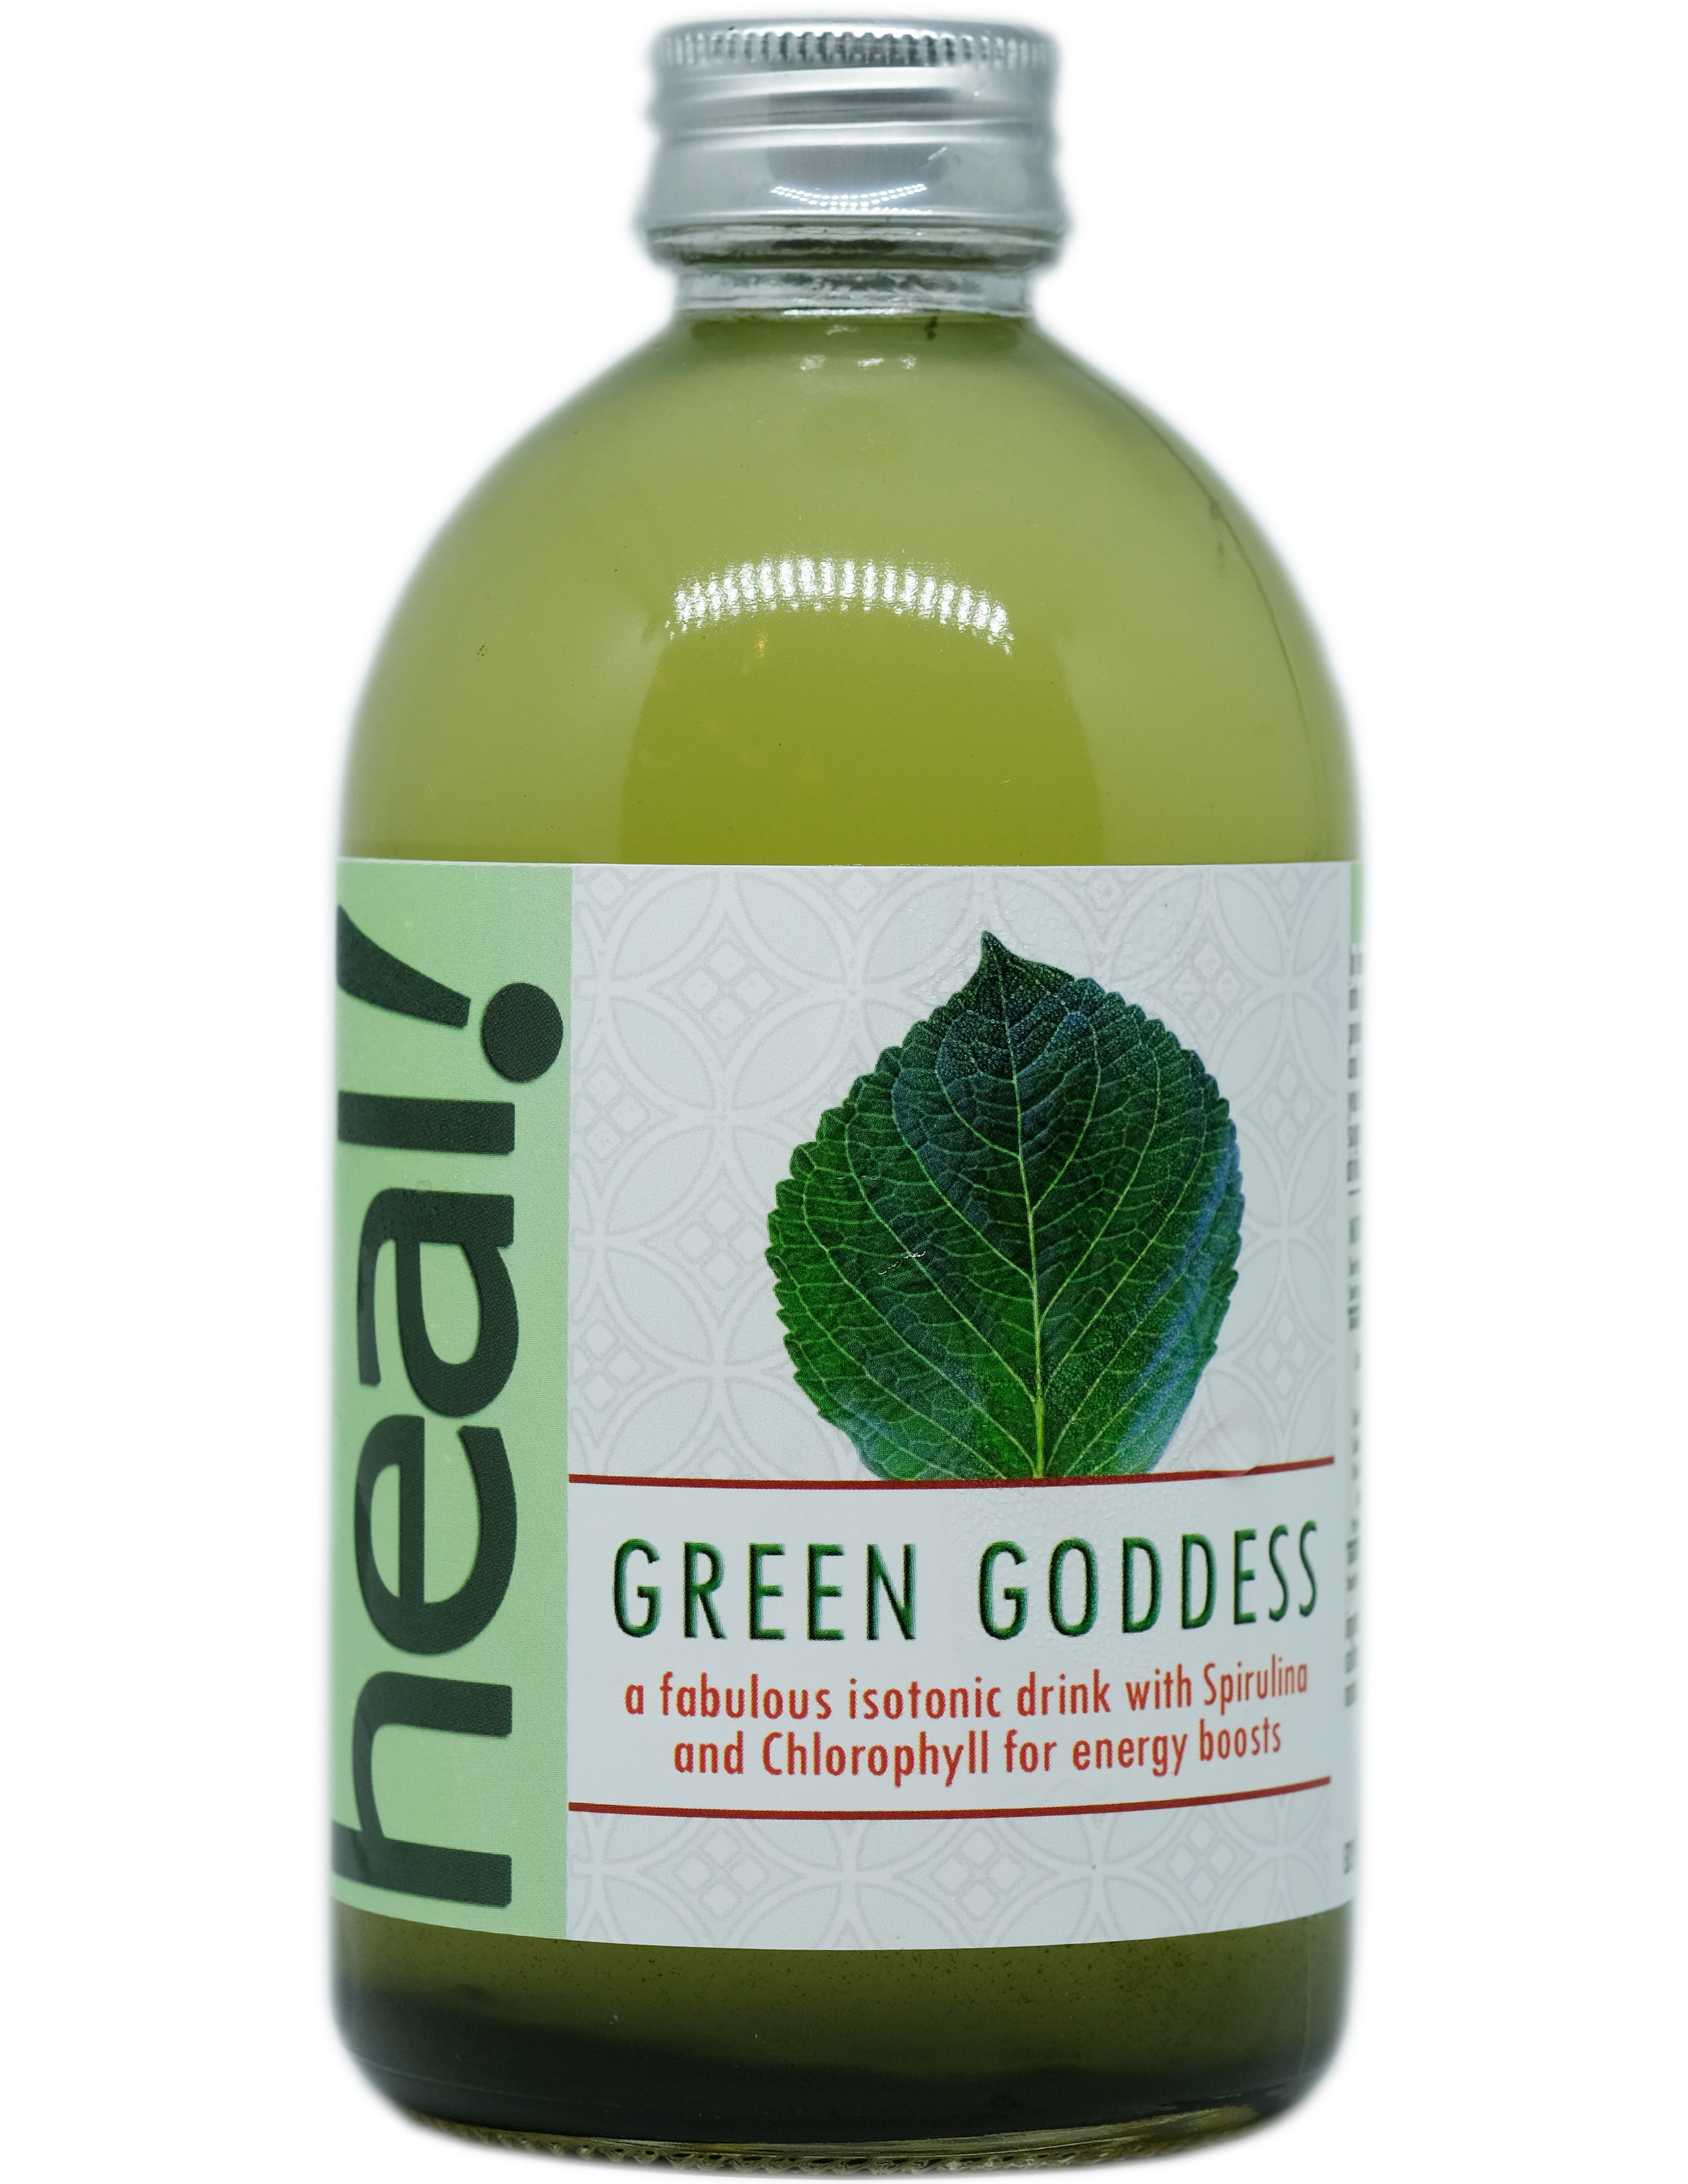 Green Goddess owes its name and gorgeous color to amazing spirulina and chlorophyll. It is an isotonic probiotic blend of water kefir and kombucha, giving you more varieties of probiotic strains for a healthier you.  Spirulina adds omega 6, omega 3, protein, vitamin B1, B2, B3, copper, iron, magnesium, potassium, manganese and almost every other nutrient we need. Chlorophyll, on the other hand, stimulates immune system, detoxifies blood, and energizes body. Green Goddess is a perfect recovery drink from ailments and exertions.  Ingredients: Mineral Water, Kombucha Cultures, Water Kefir Cultures, Jawa Oolong Tea, Natural Cane Sugar, Spirulina, Chlorophyll  Calorie 20, Sugar 3 grams per 175 ml before second fermentation, by which process reduces calorie and sugar content further and create fizz.  Packaged in reusable,  refundable  glass bottle, 370 ml.  RECIPE  click here   CONTACT US  click here